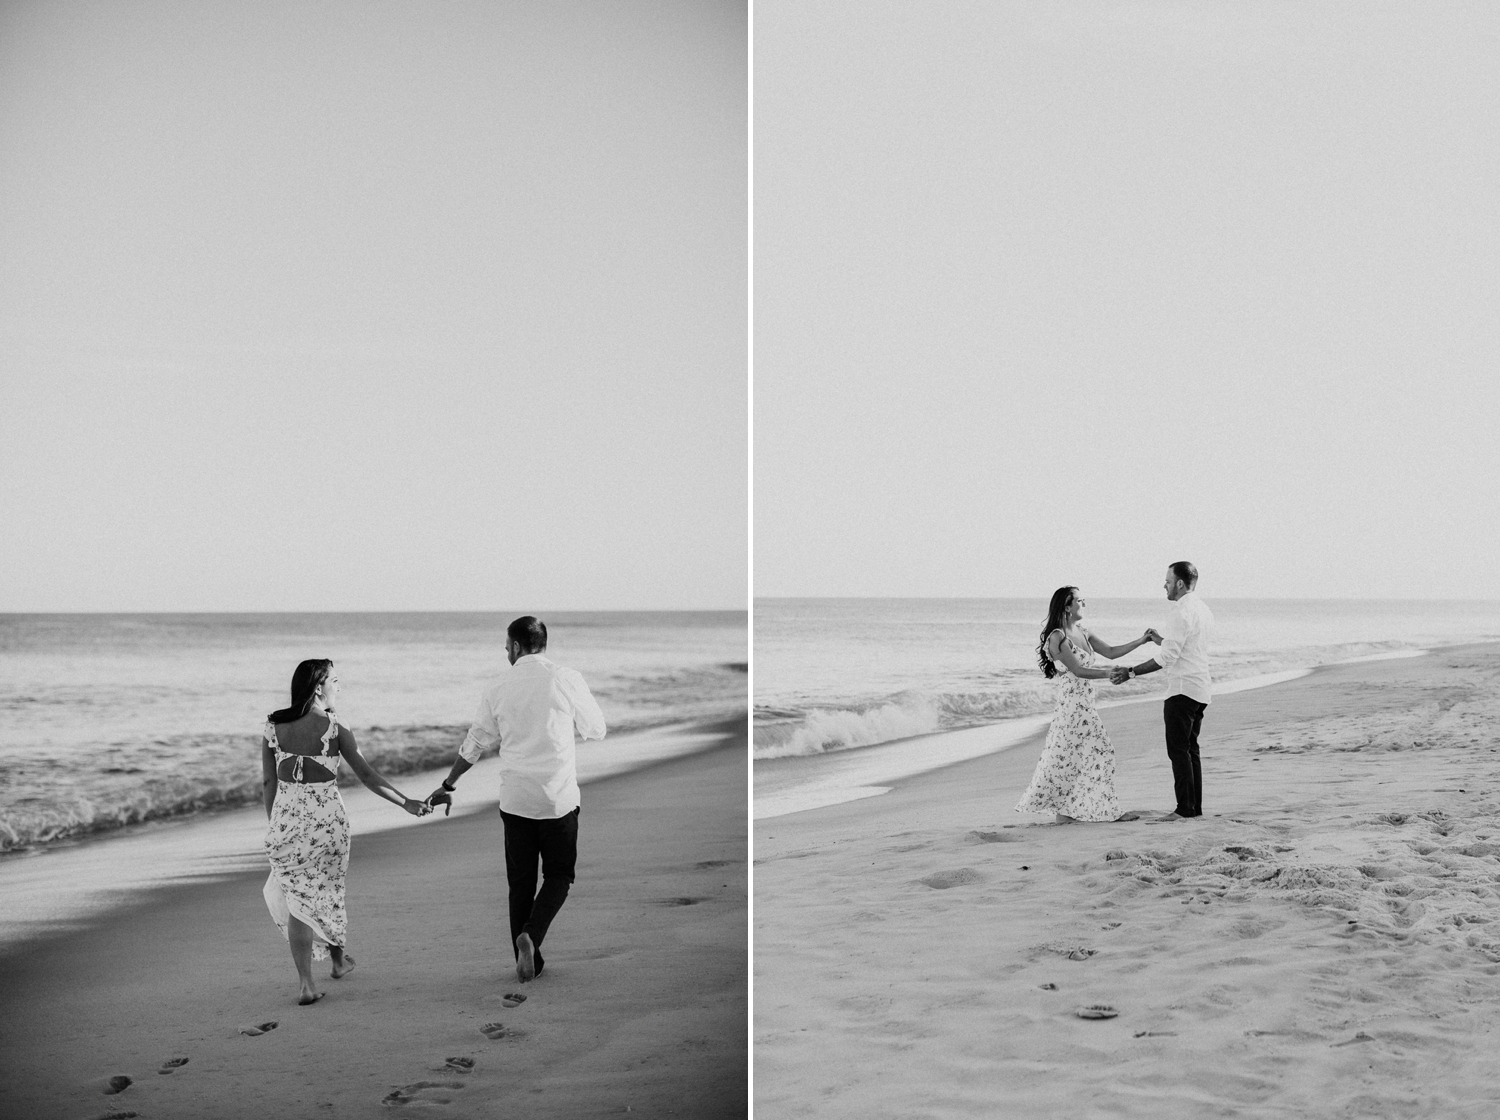 ho-hum-beach-boat-ride-engagement-photography-bellport-new-york 20.jpg